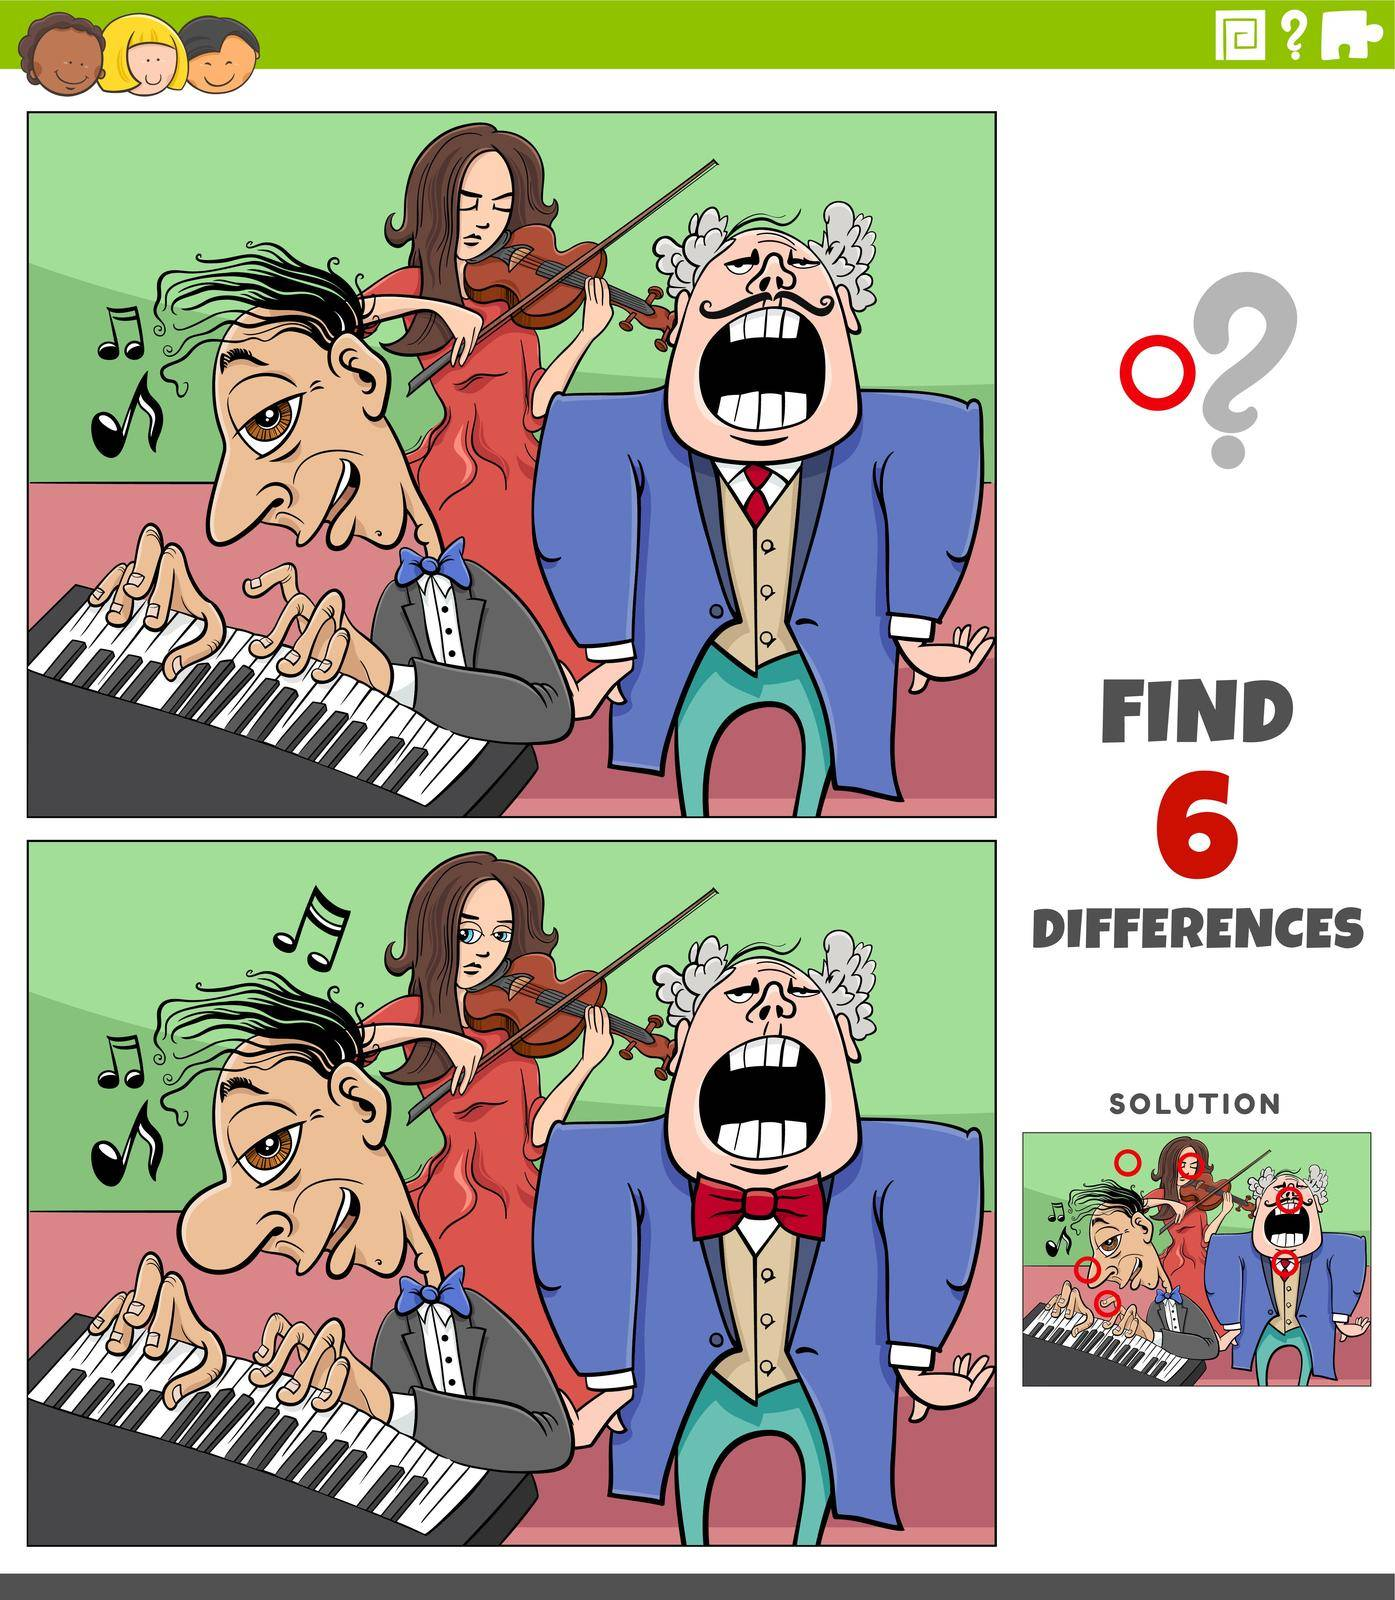 Cartoon illustration of finding the differences between pictures educational game with musicians group